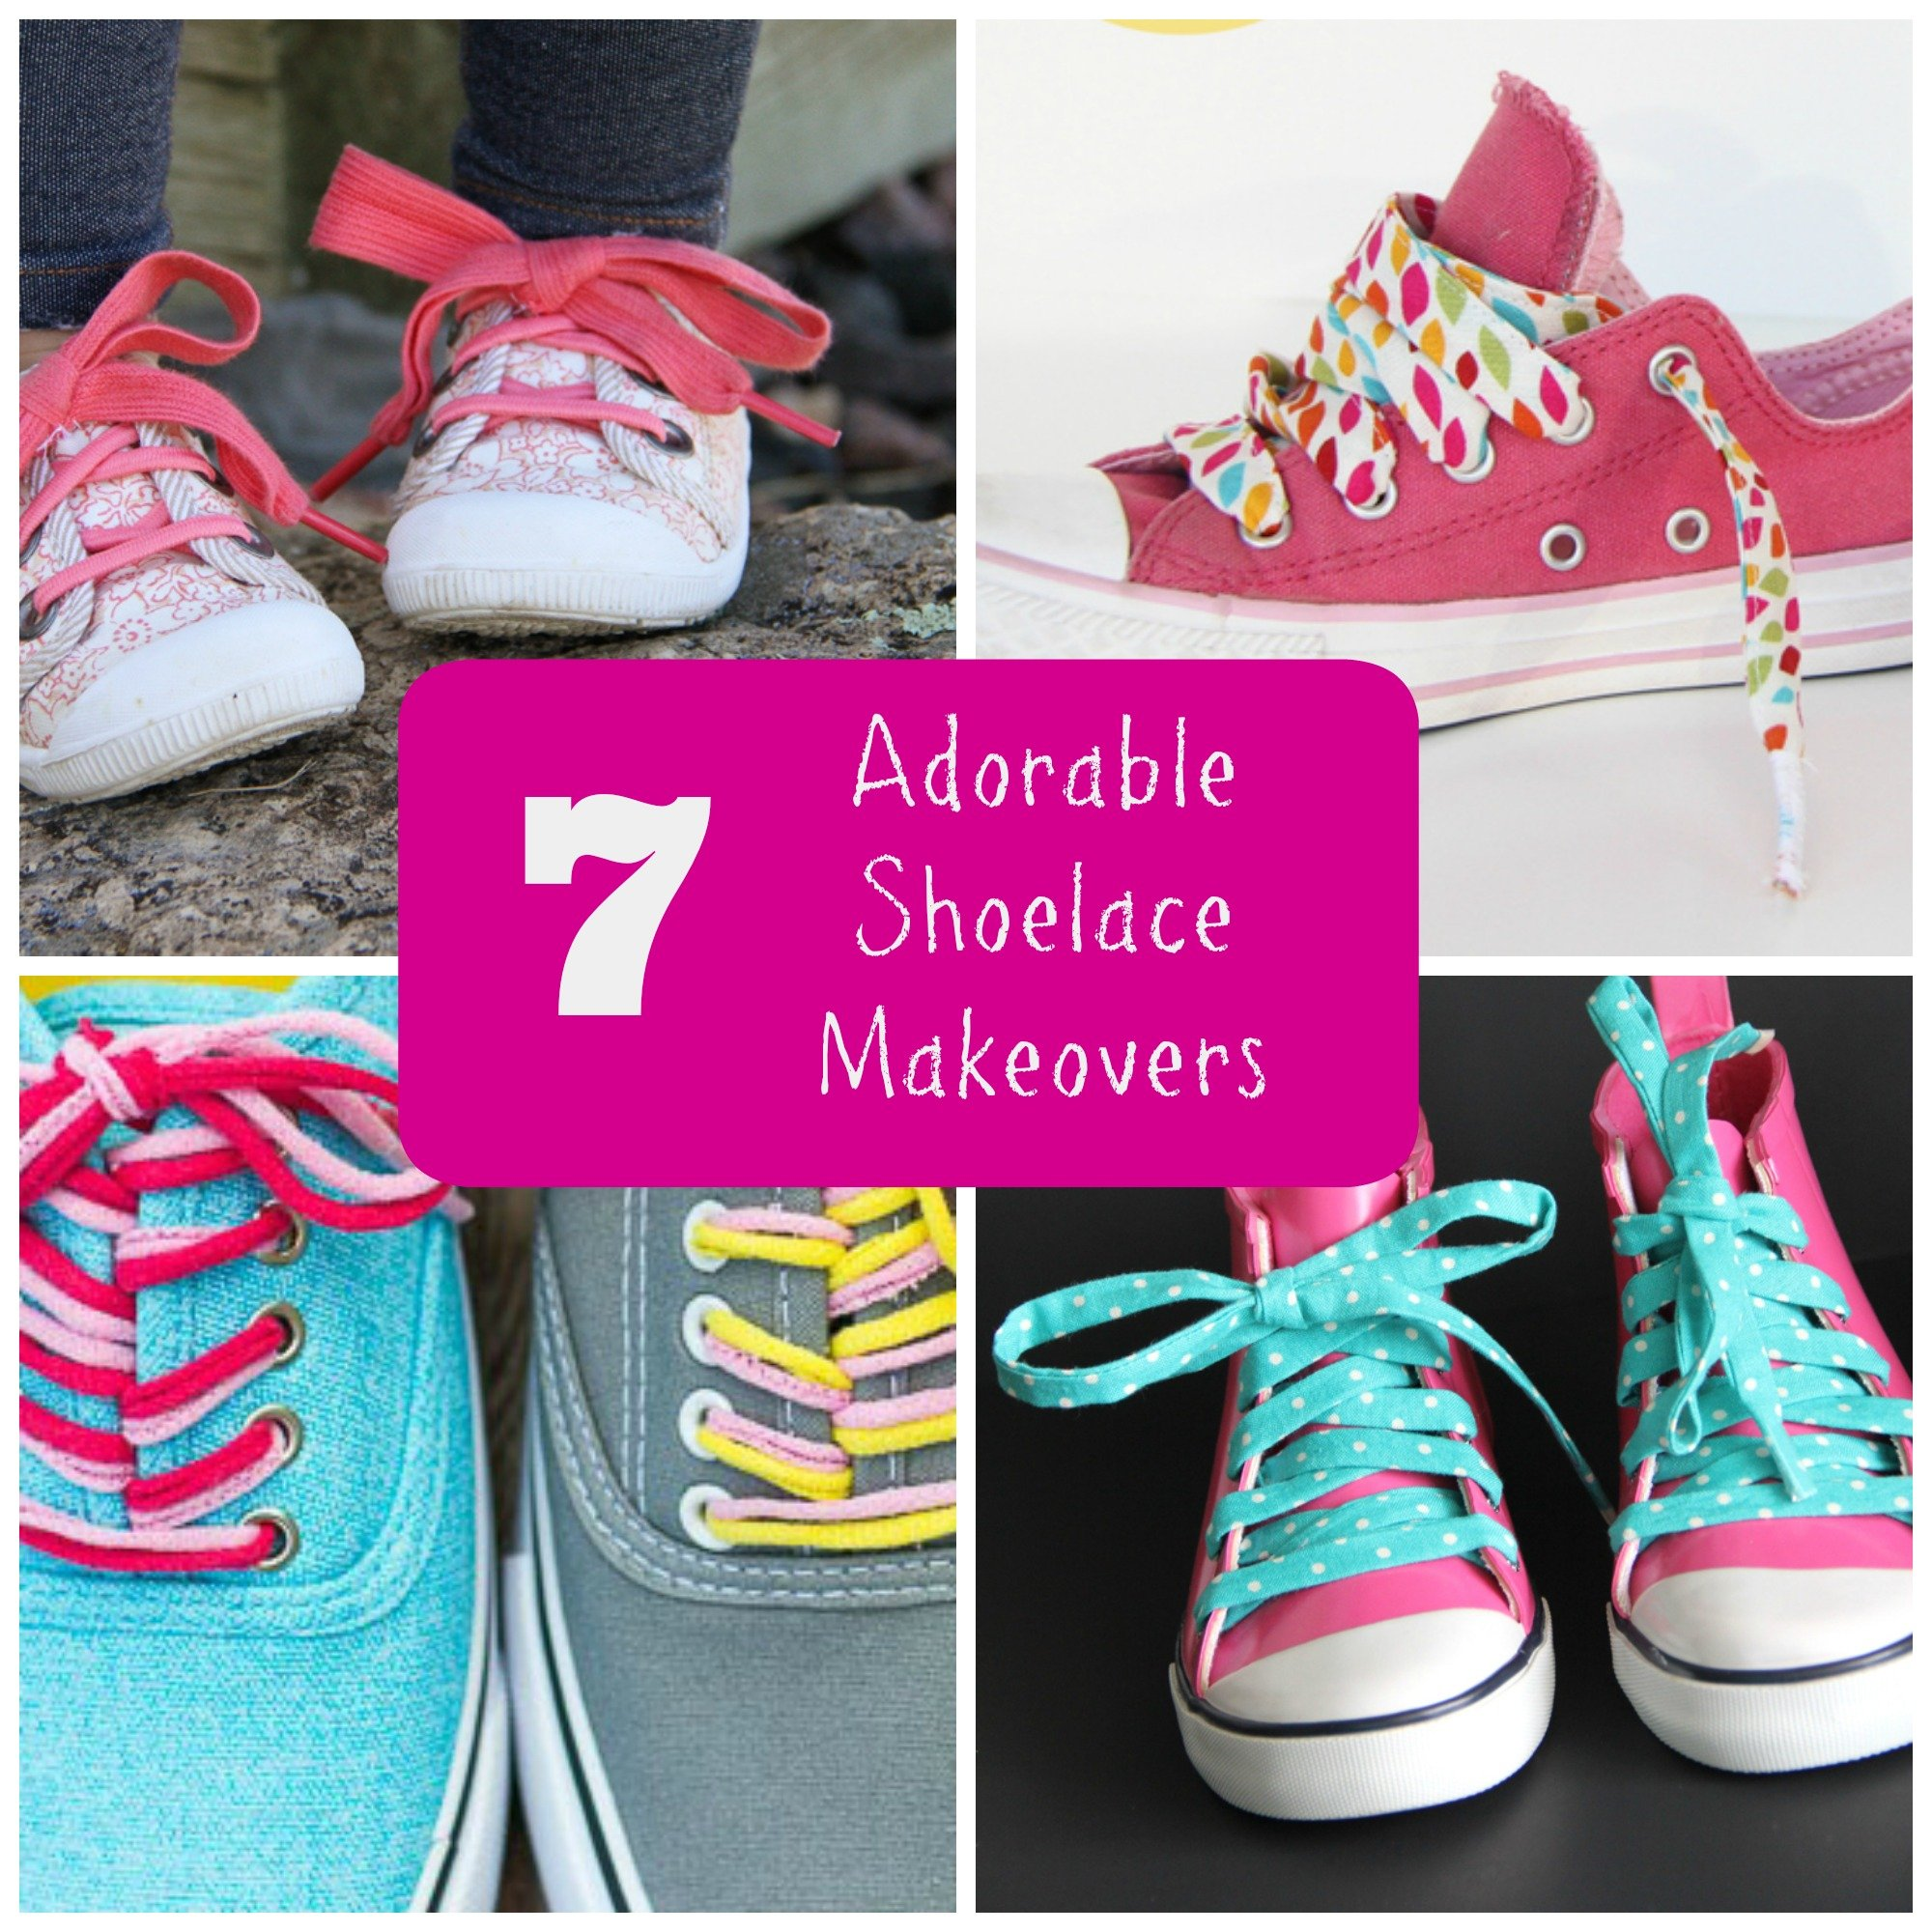 7 adorable shoelace makeovers